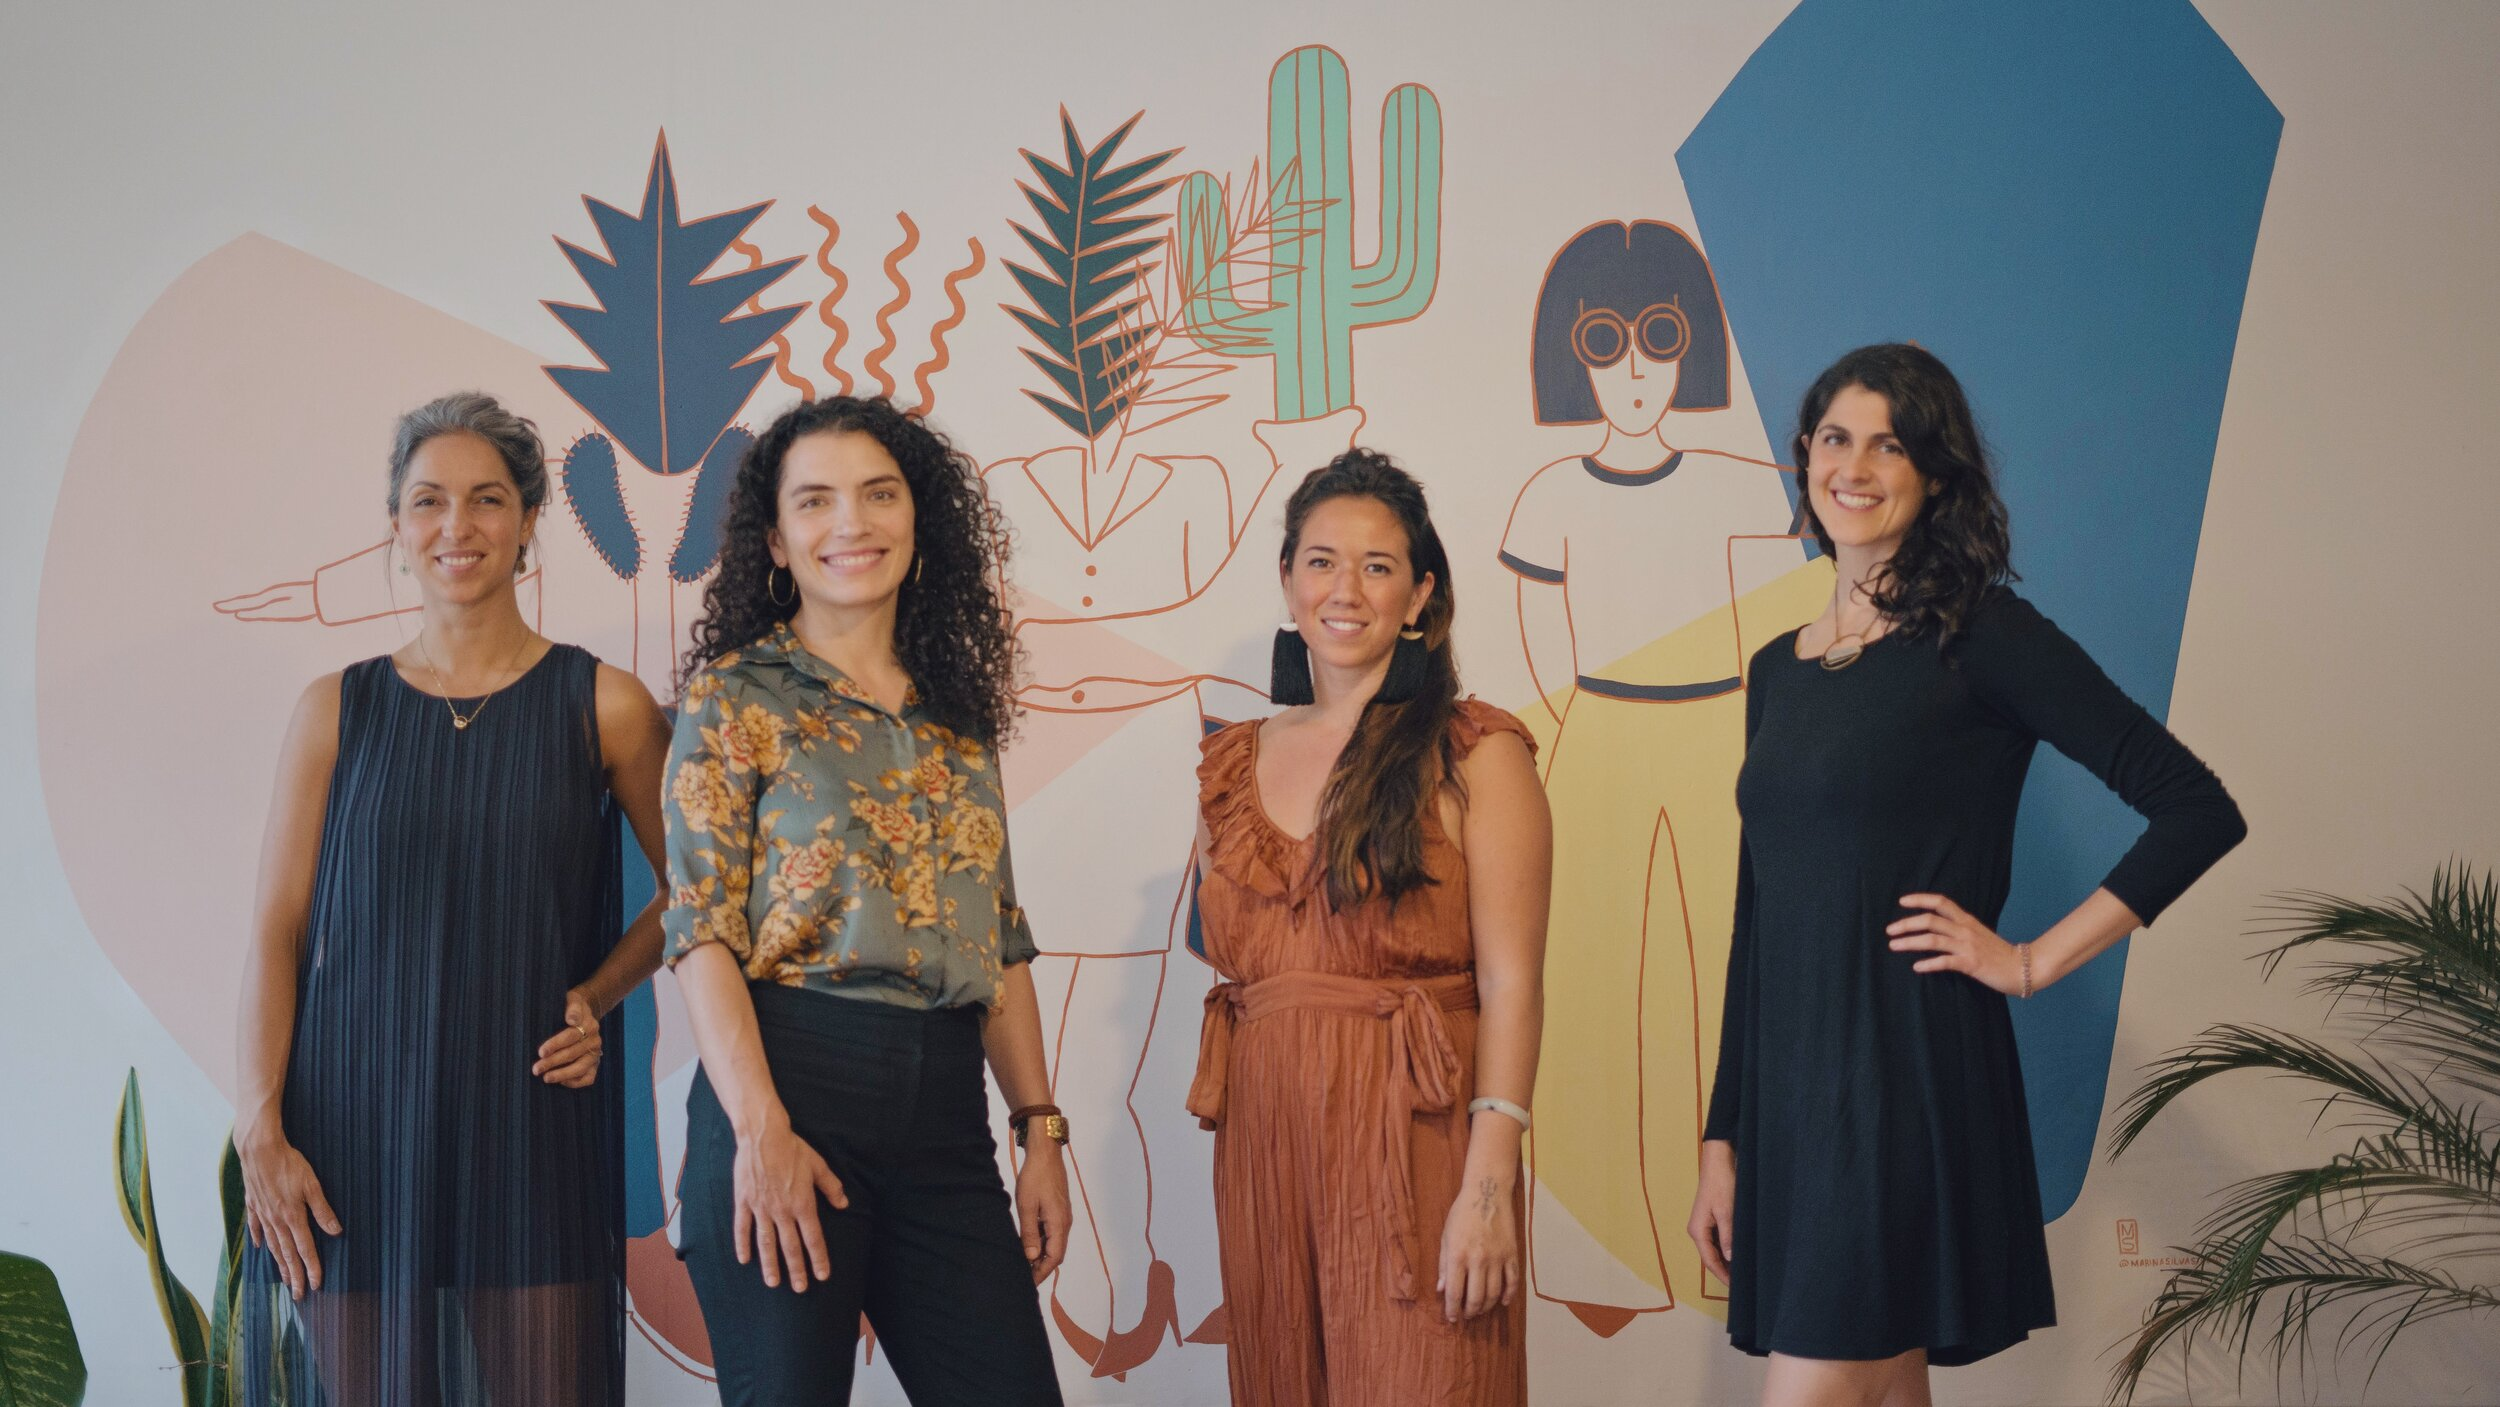 Mari Sierra, Sadie Kaufman, Ting Kelly & Mariana Quiroga at MIA-CoGrowing, a female-led co-working space in Mexico City